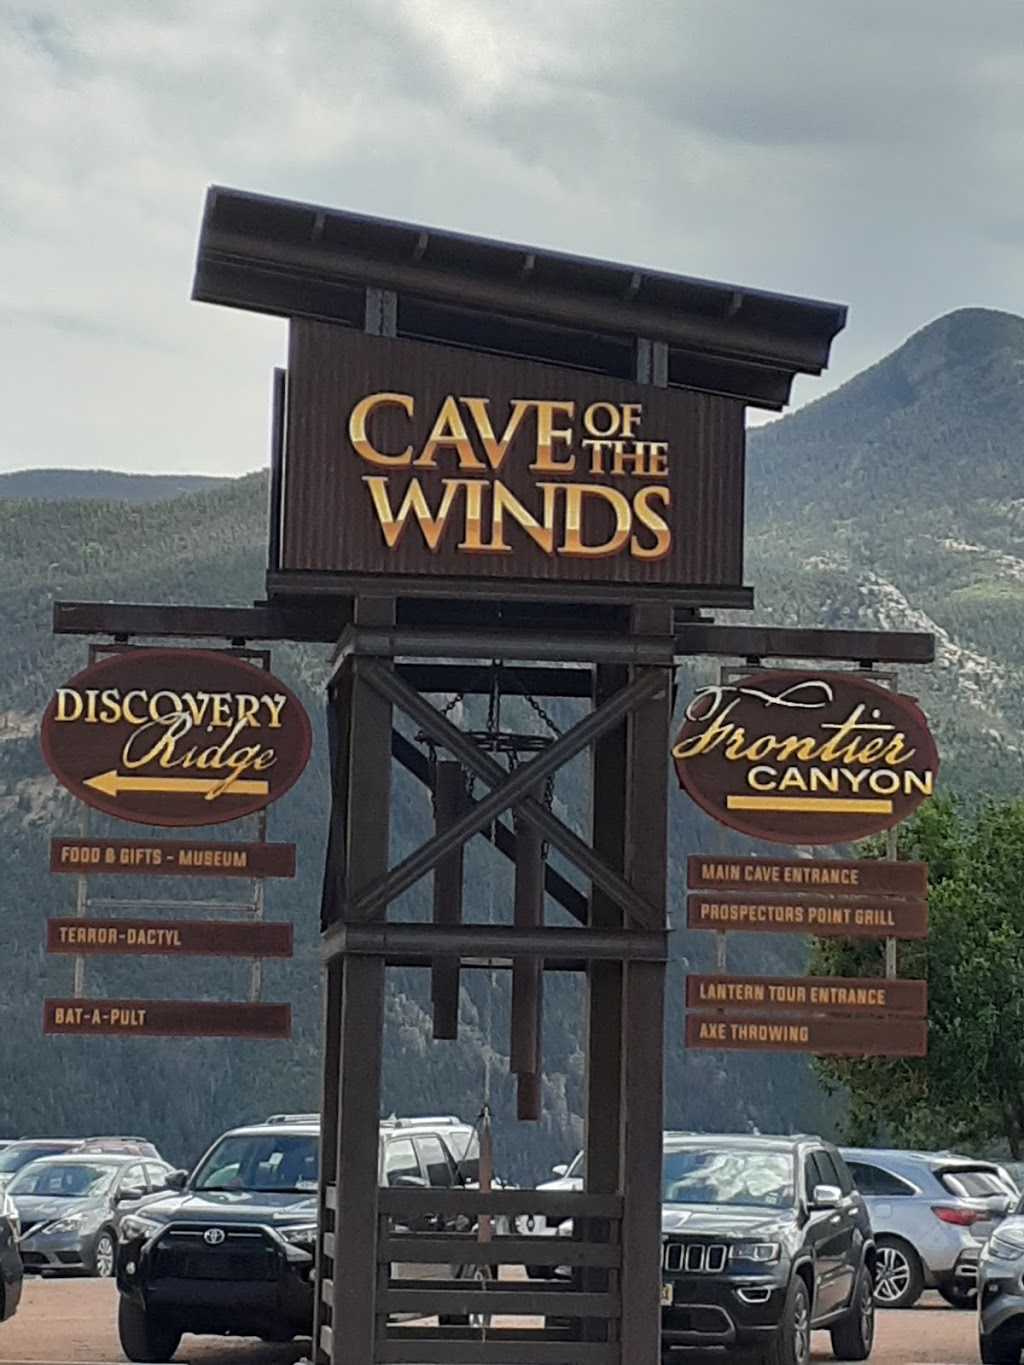 Via Ferrata Canyon - museum  | Photo 2 of 9 | Address: 100 Cave of the Winds Rd, Cascade, CO 80809, USA | Phone: (719) 685-5444